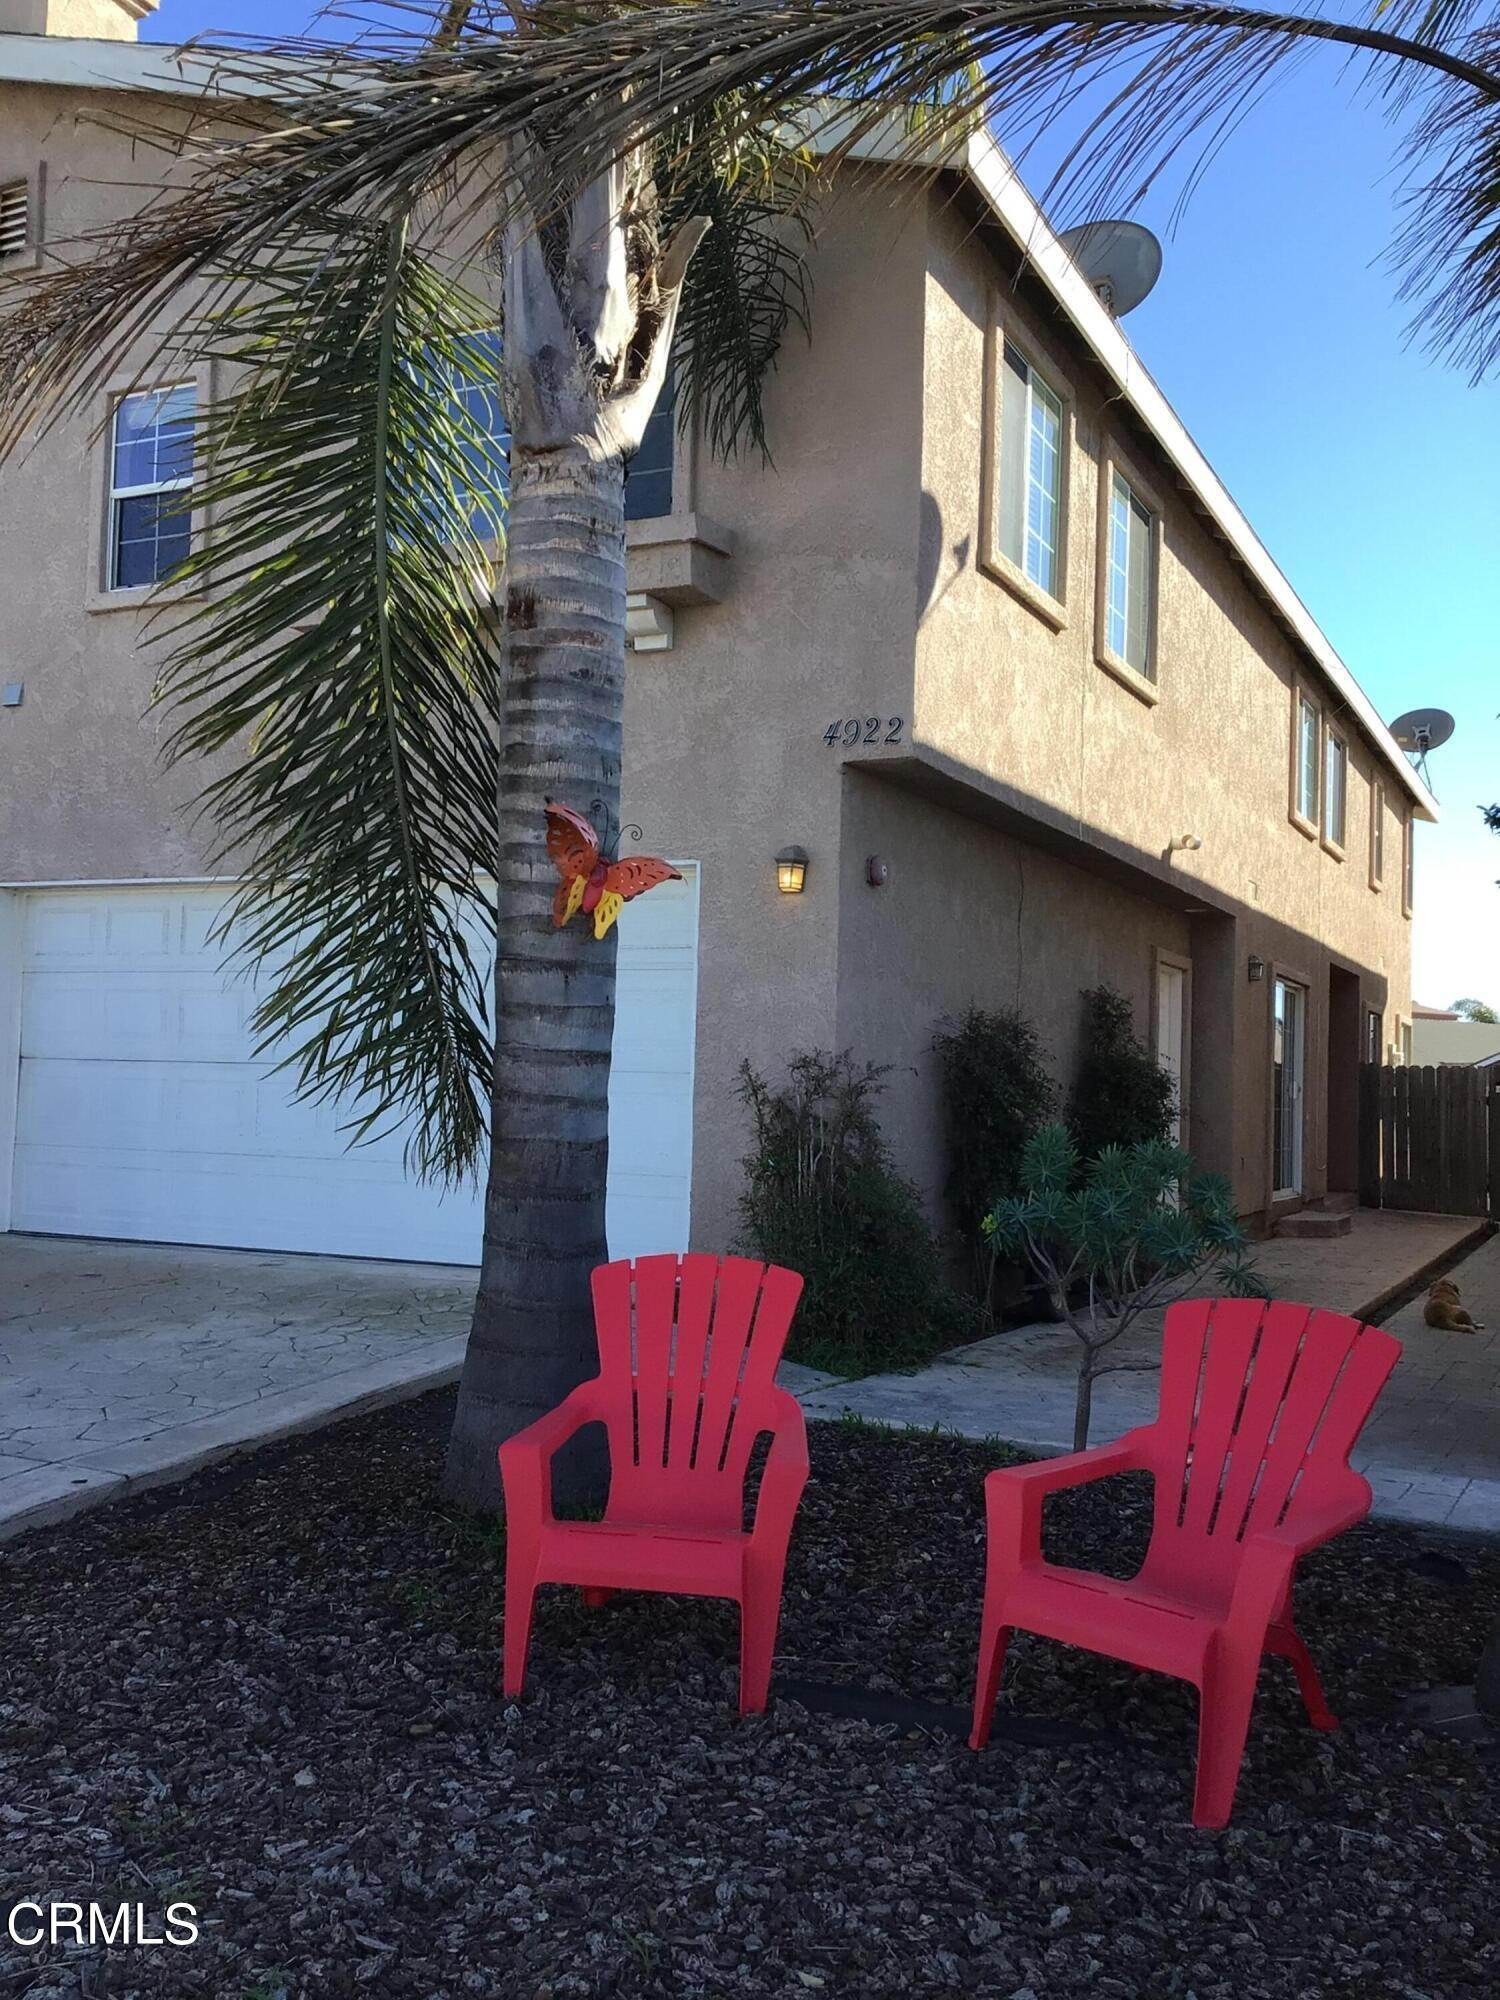 39. townhouses for Sale at 4922 Catamaran Street Oxnard, California 93035 United States